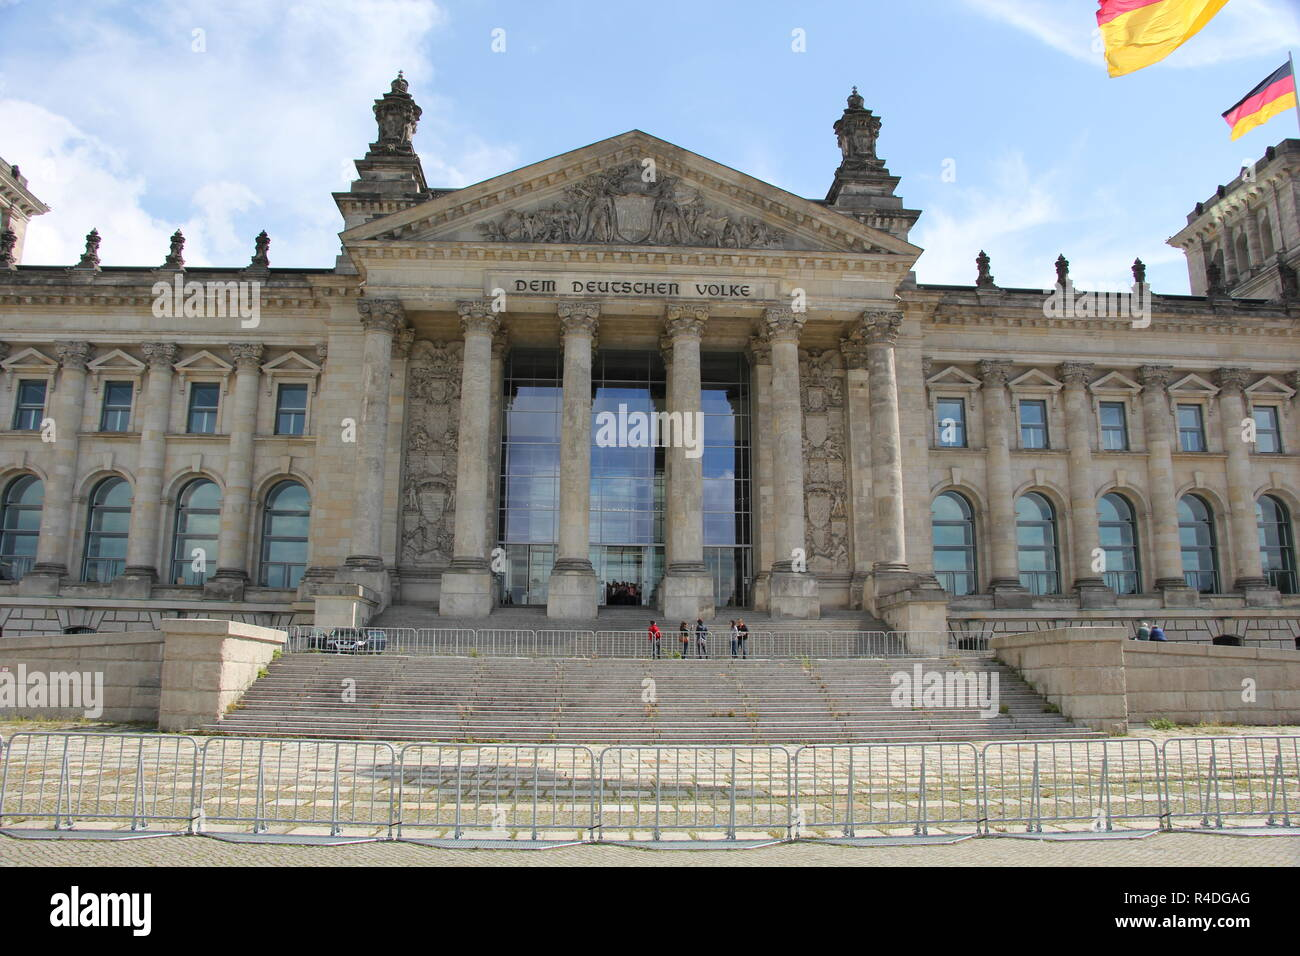 Reichstag in Berlin, Germany - Stock Image